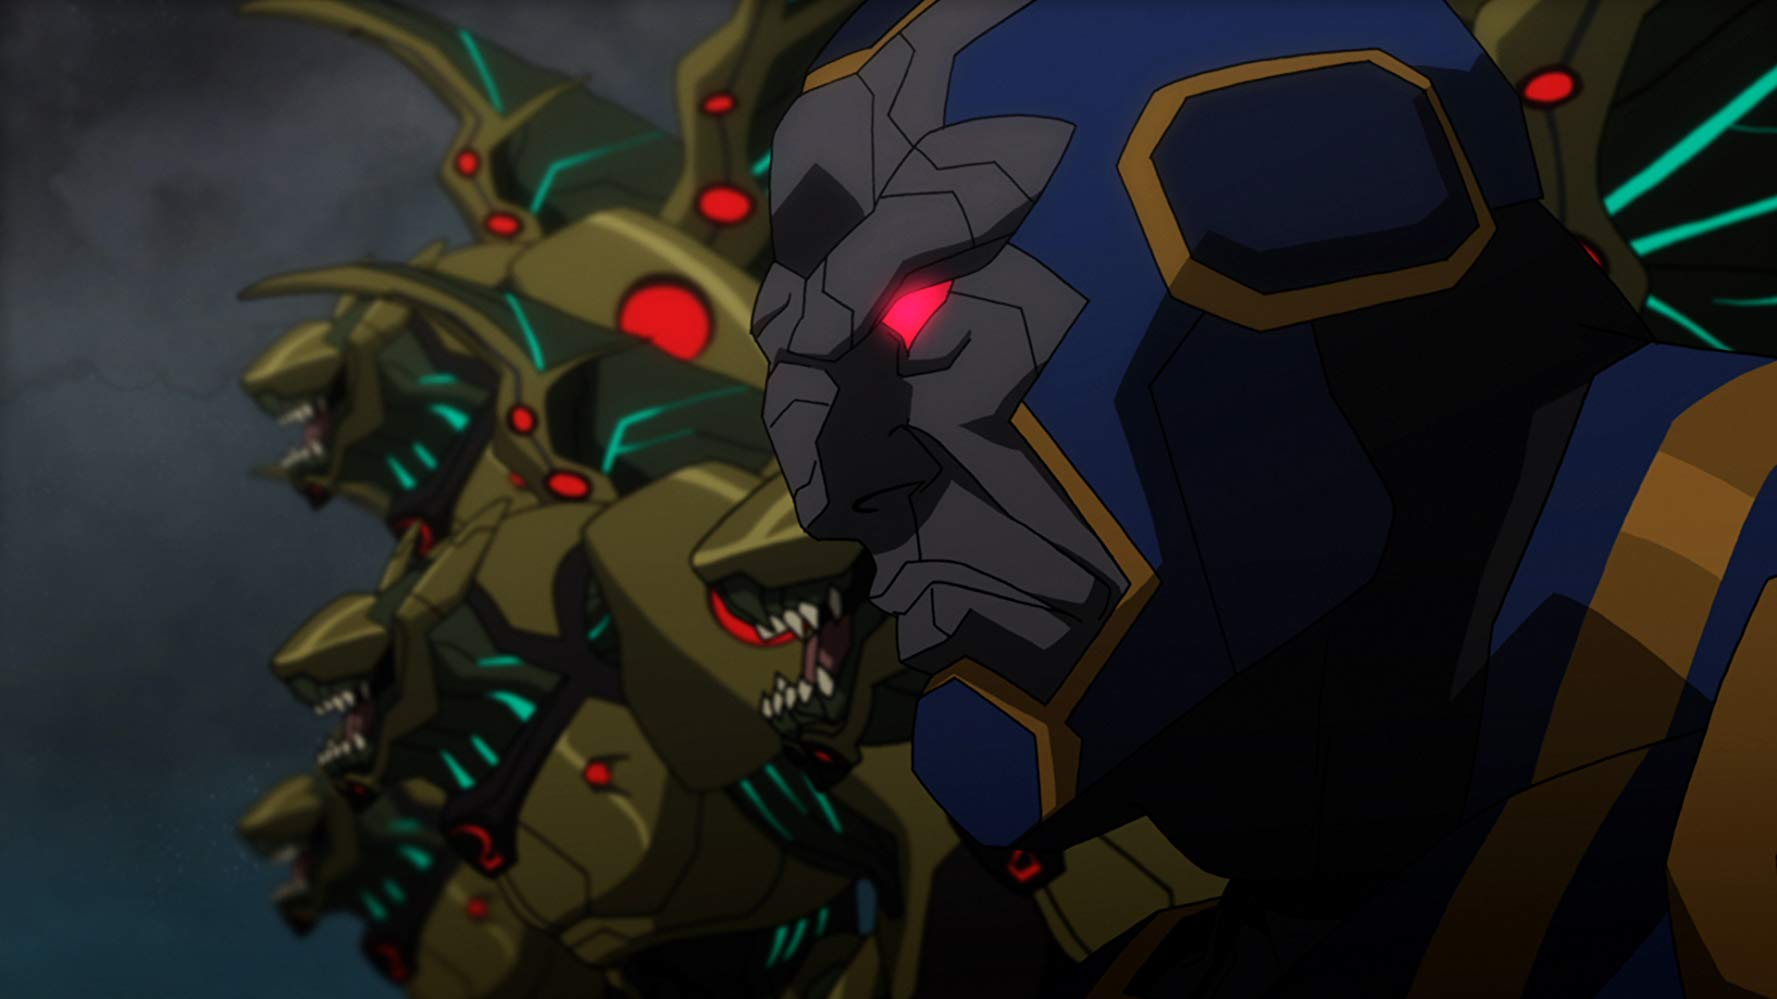 Darkseid in 'Young Justice'. (Source: IMDB)